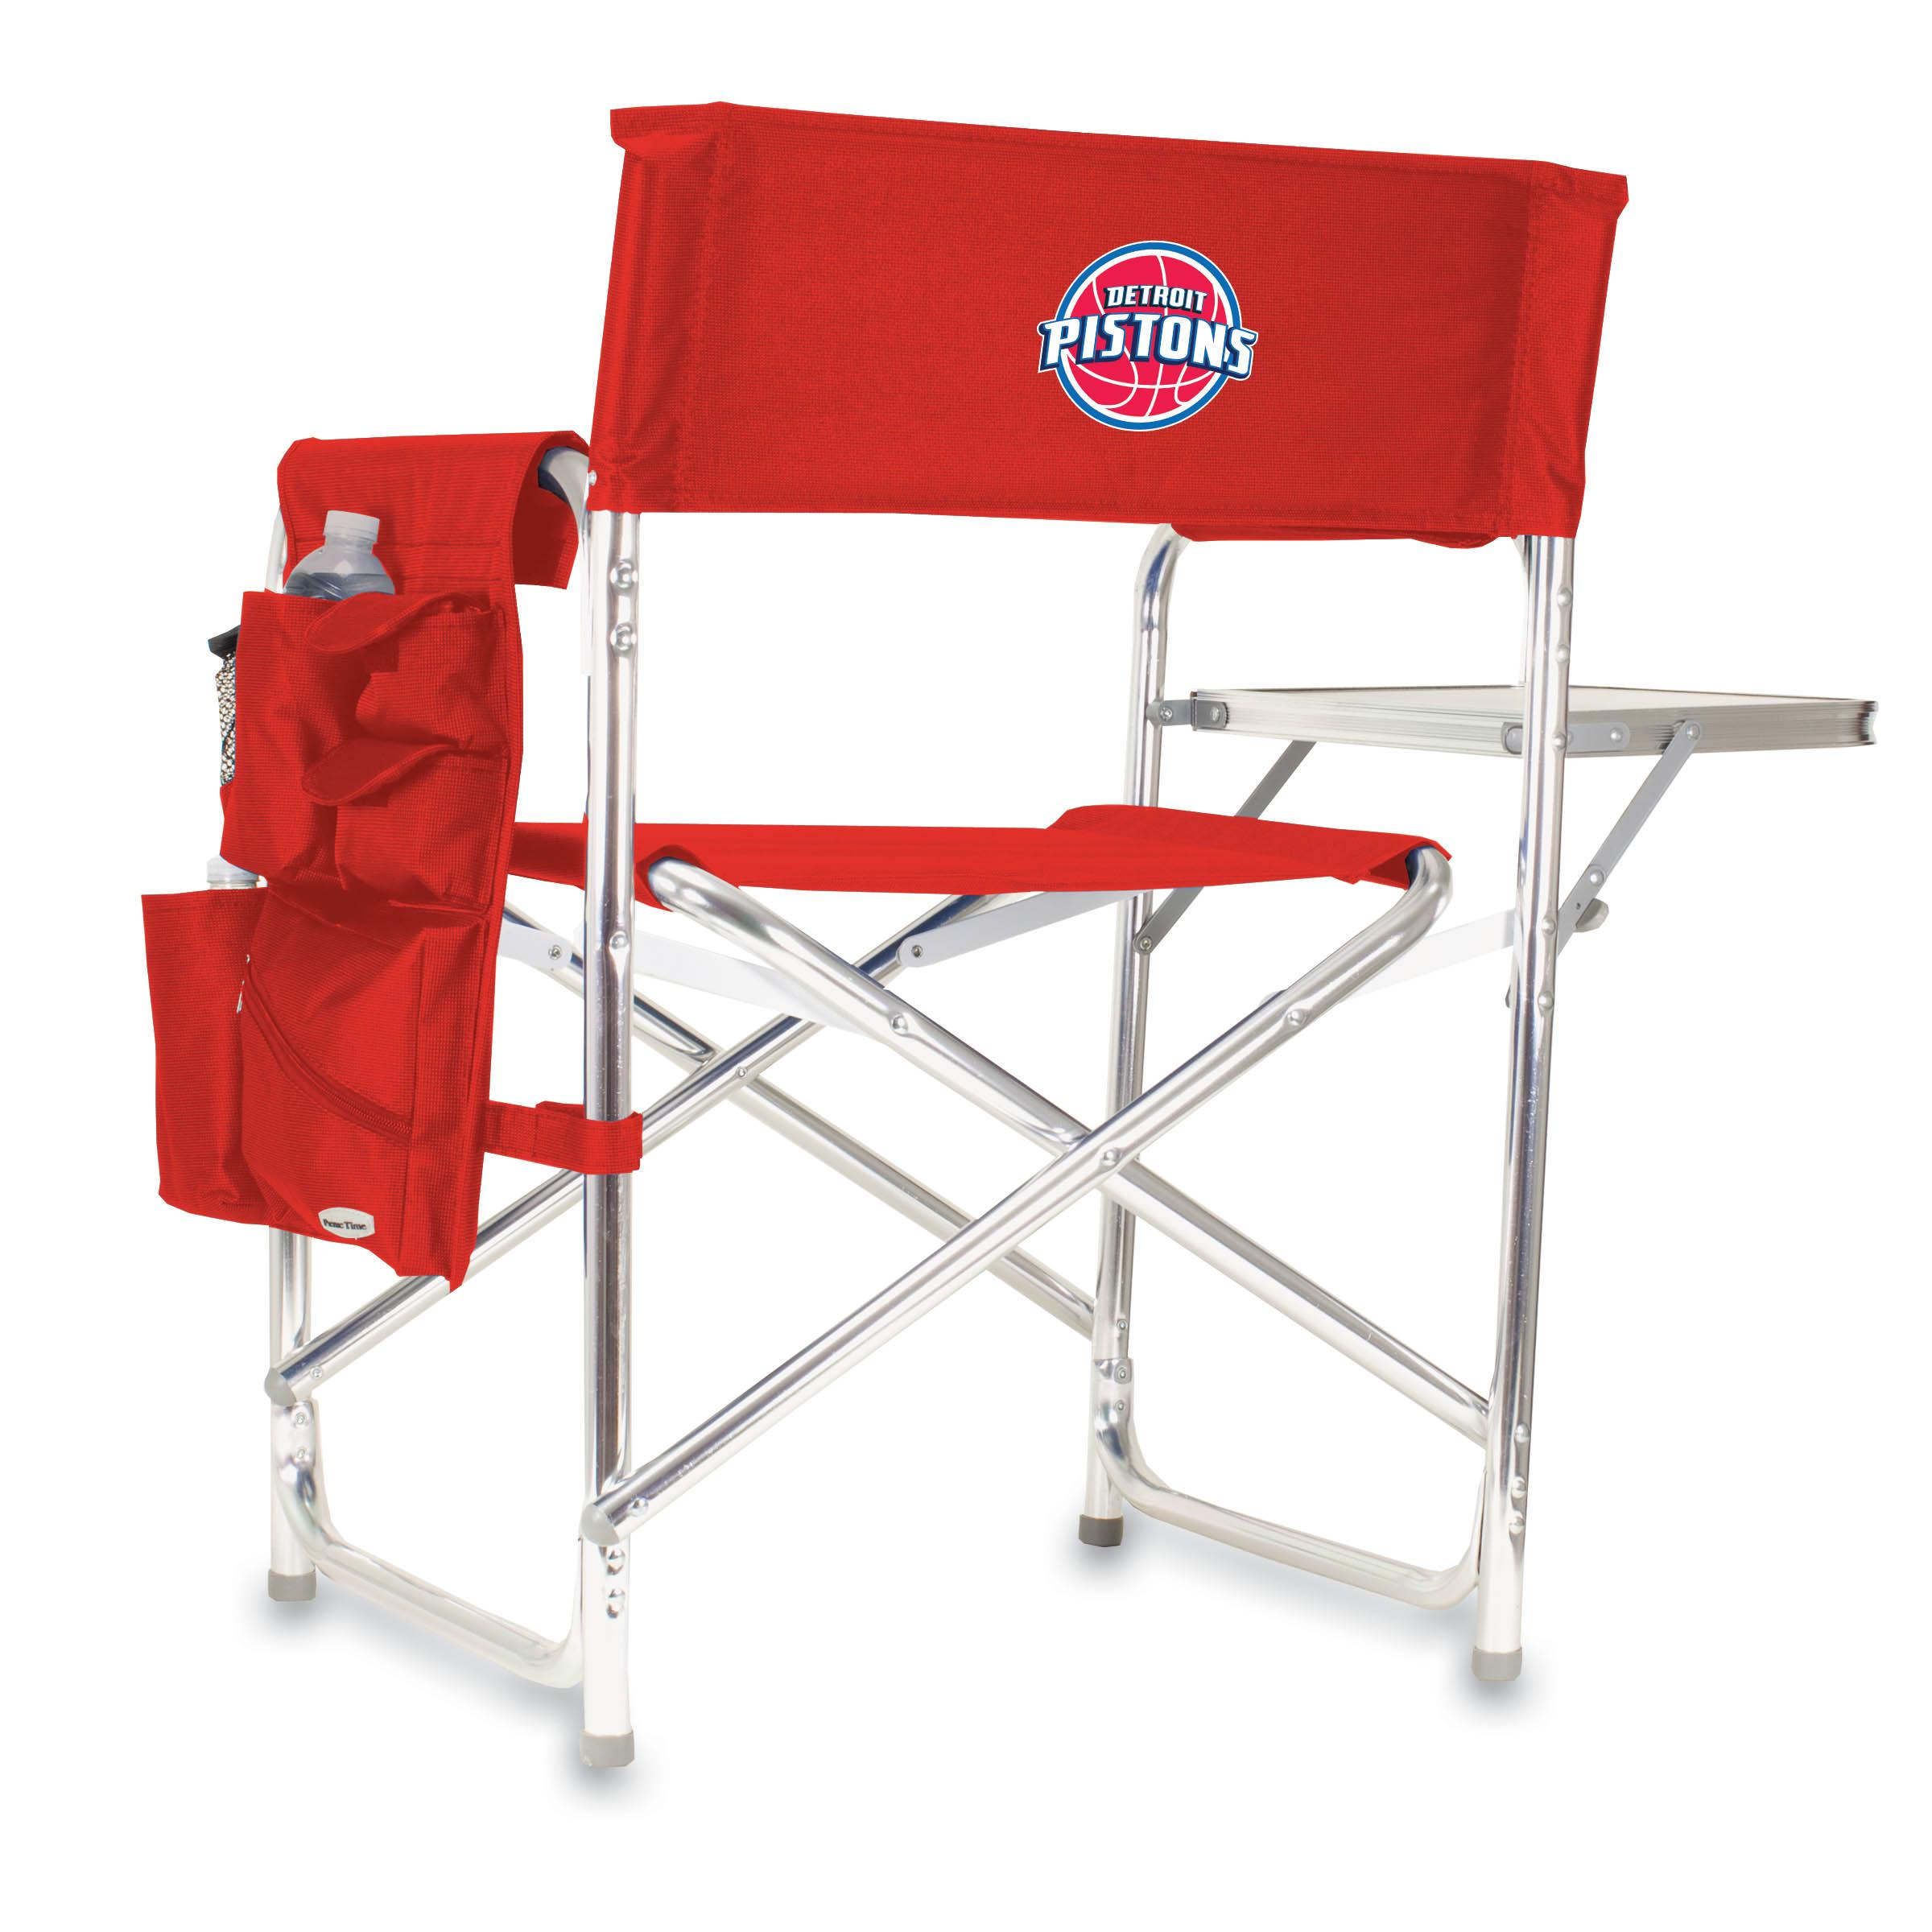 Picnic Time Nba Sports Chair Detroit Pistons